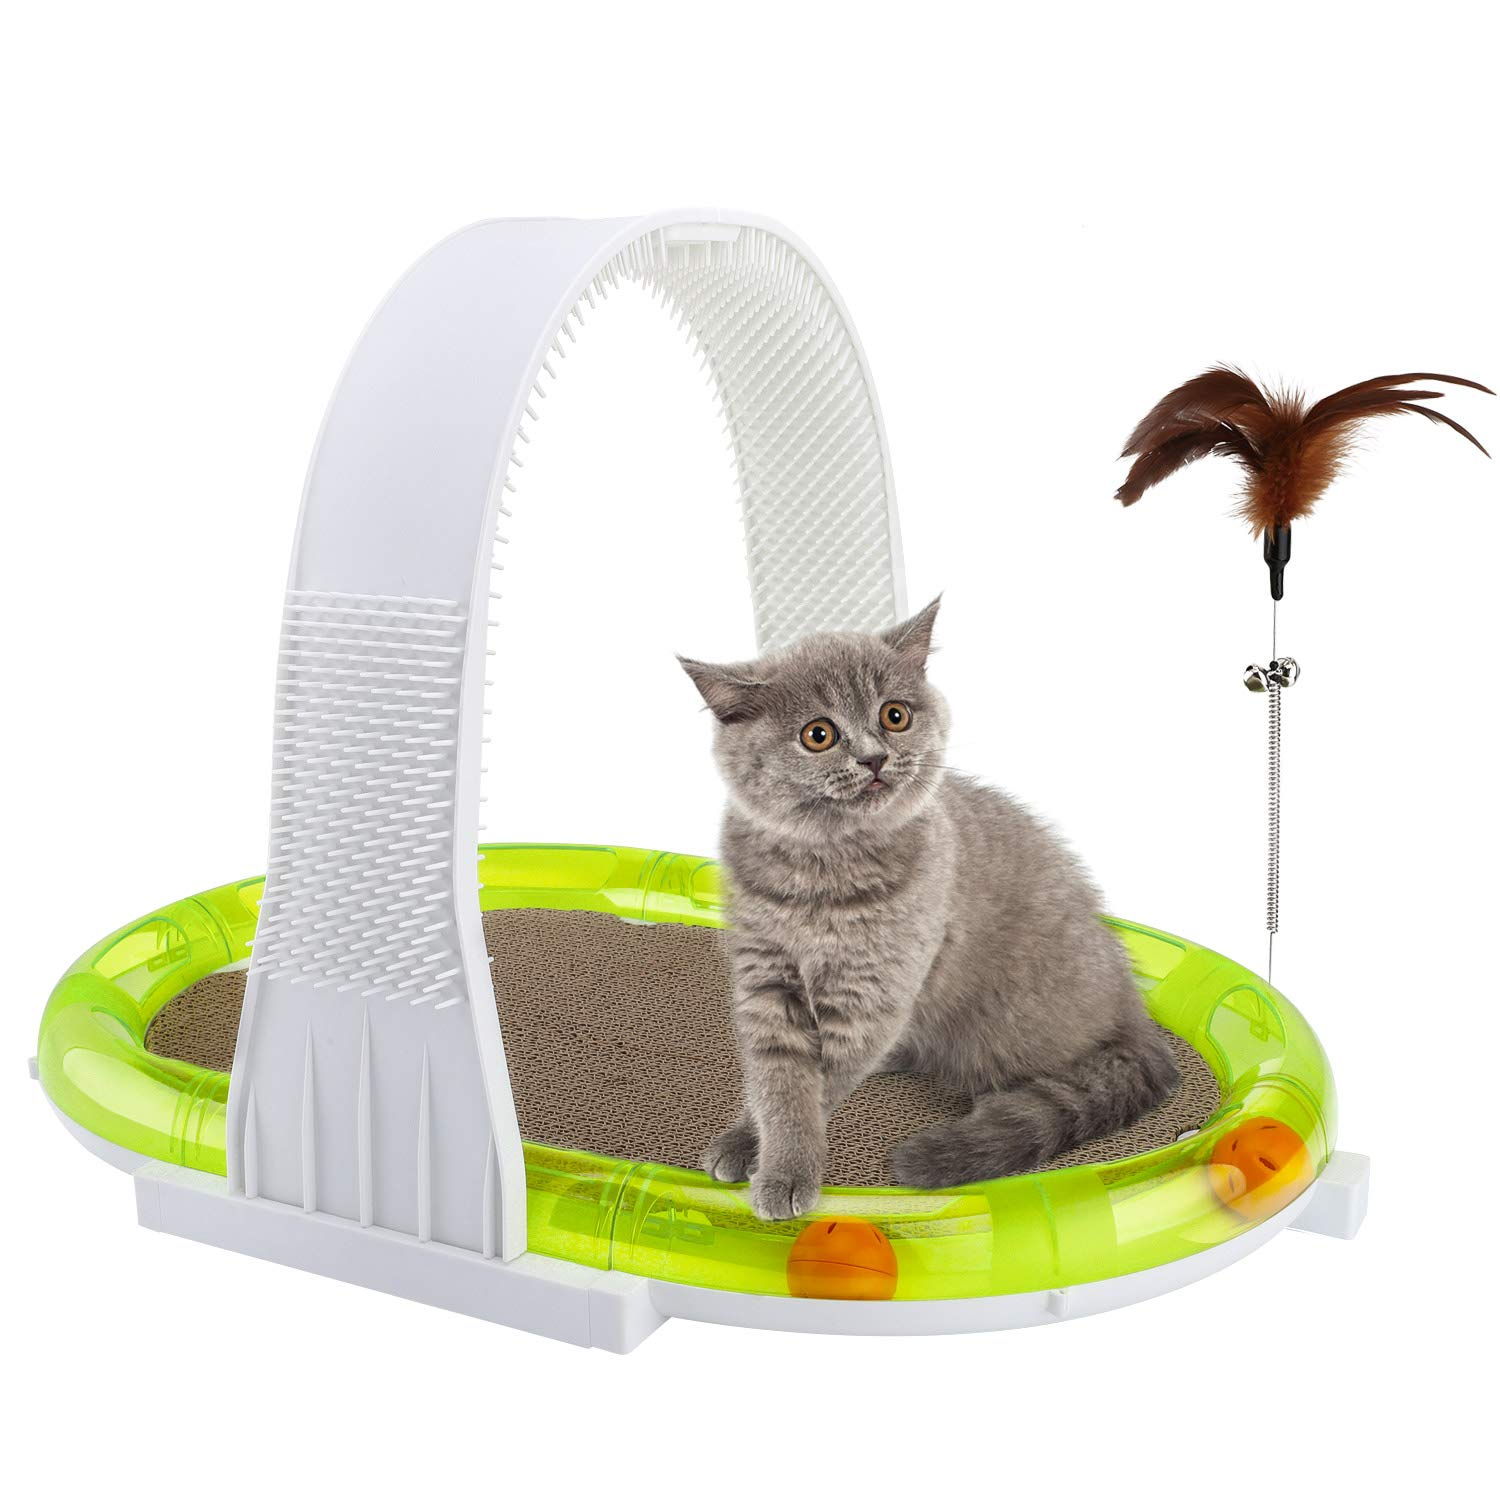 Pawaboo 4 in 1 Scratcher Cat Toy, Multiple Function Pet Cat Scratching Corrugated Board Toy Pad with Catnip Arched Scratch Board Interactive Feather Teaser Toy with Toy Ball Track for Cat Kitty, Green by PAWABOO